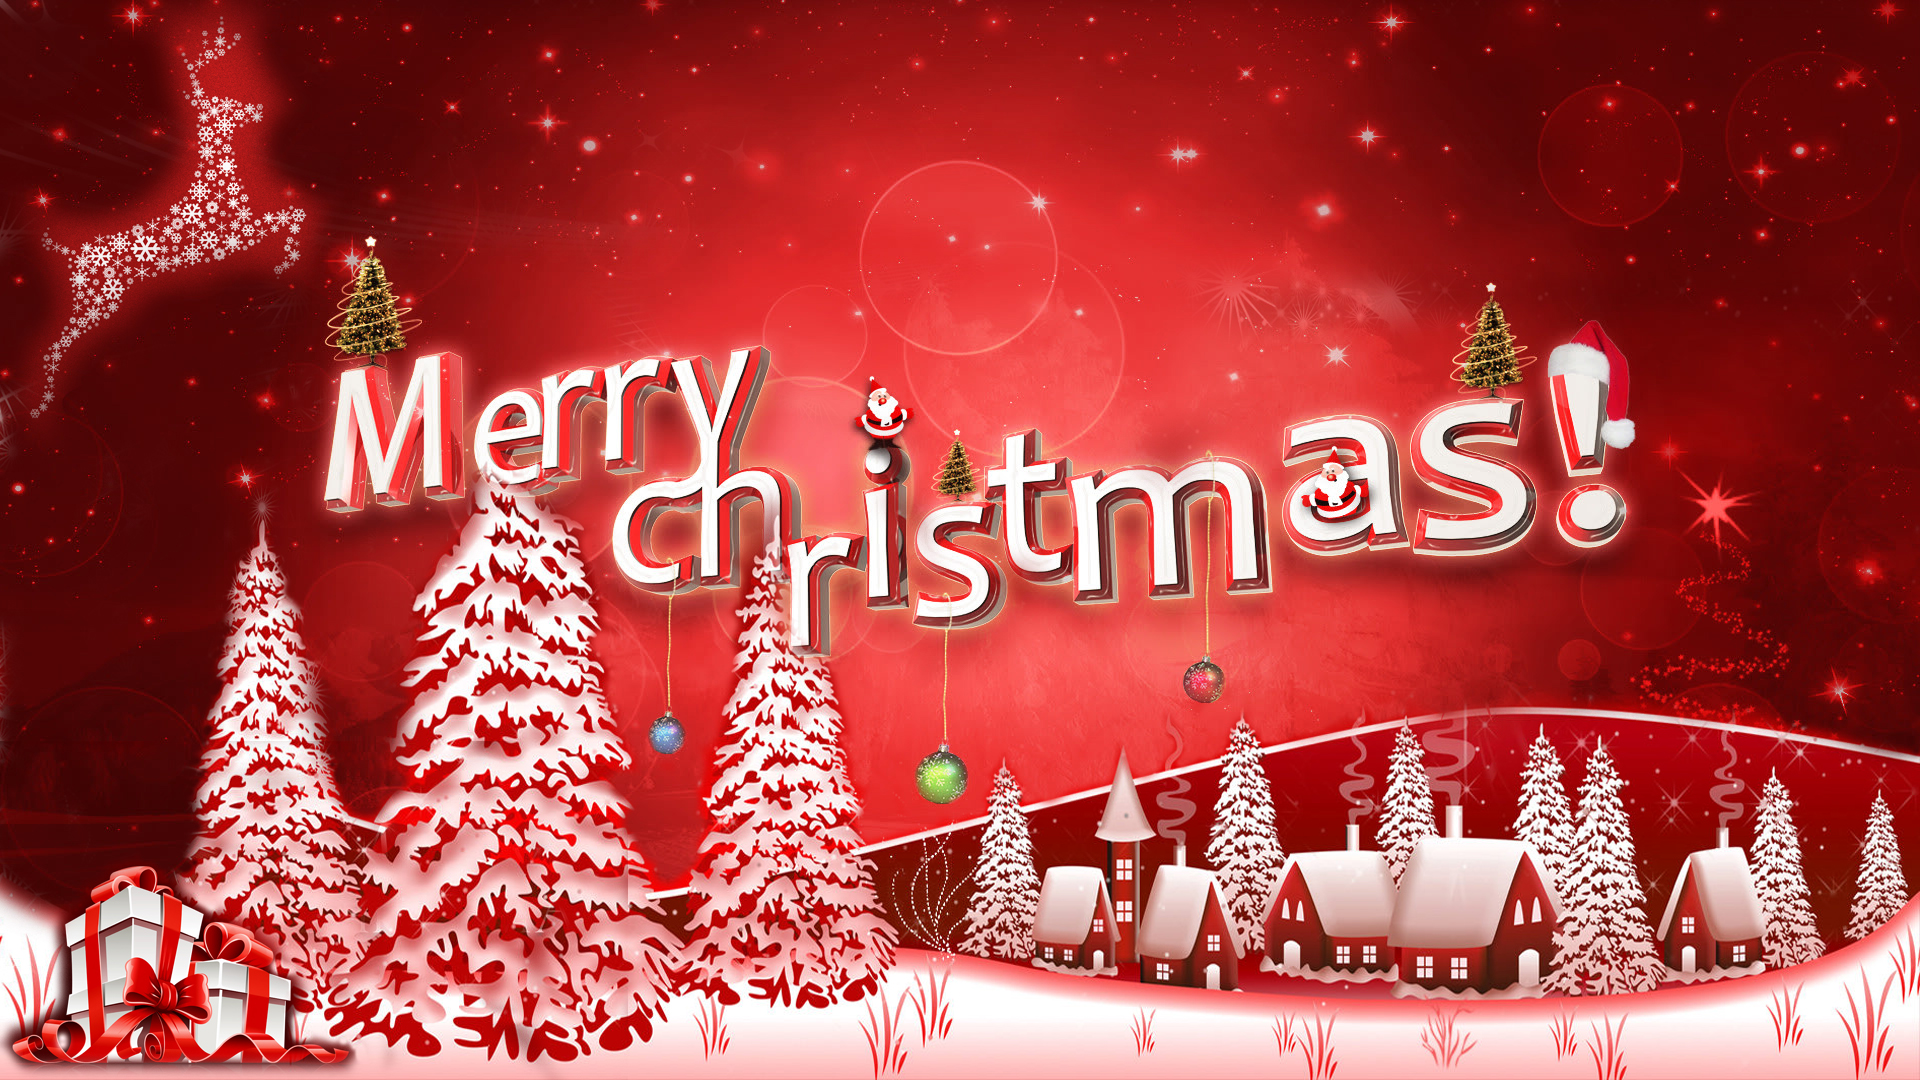 Christmas Wallpaper High Quality Quotes